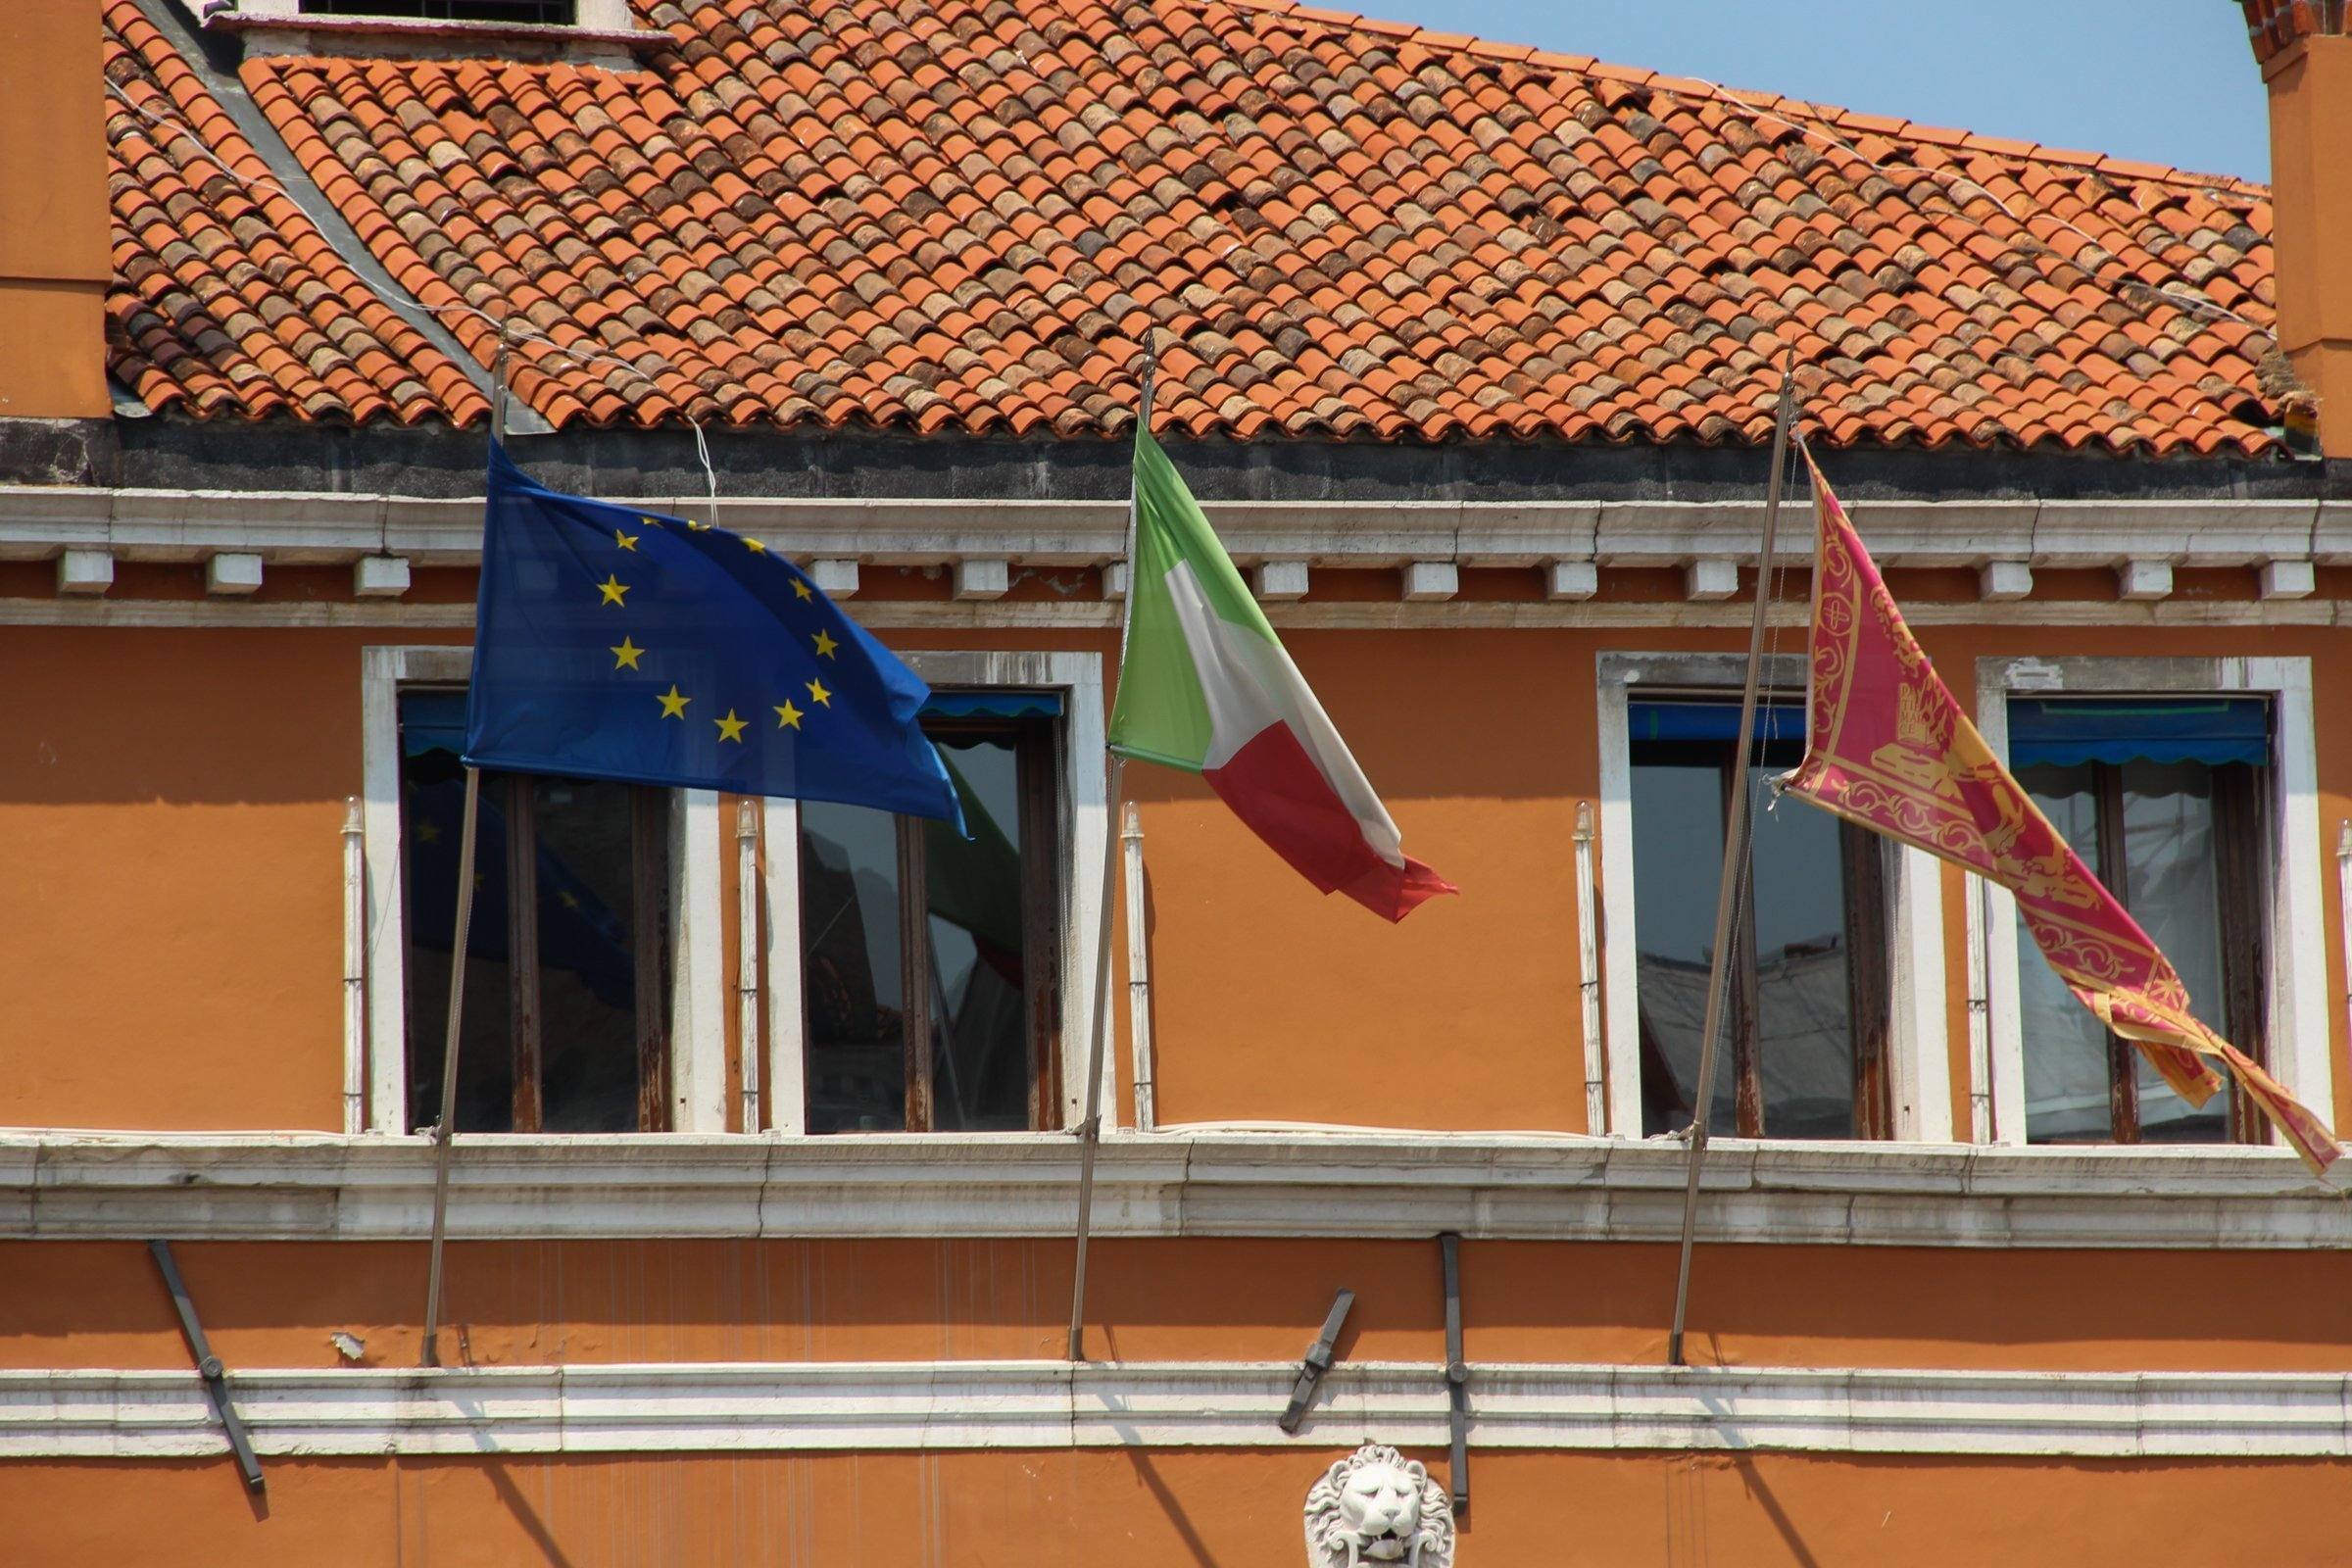 Three Flags On Ocher Colored Building